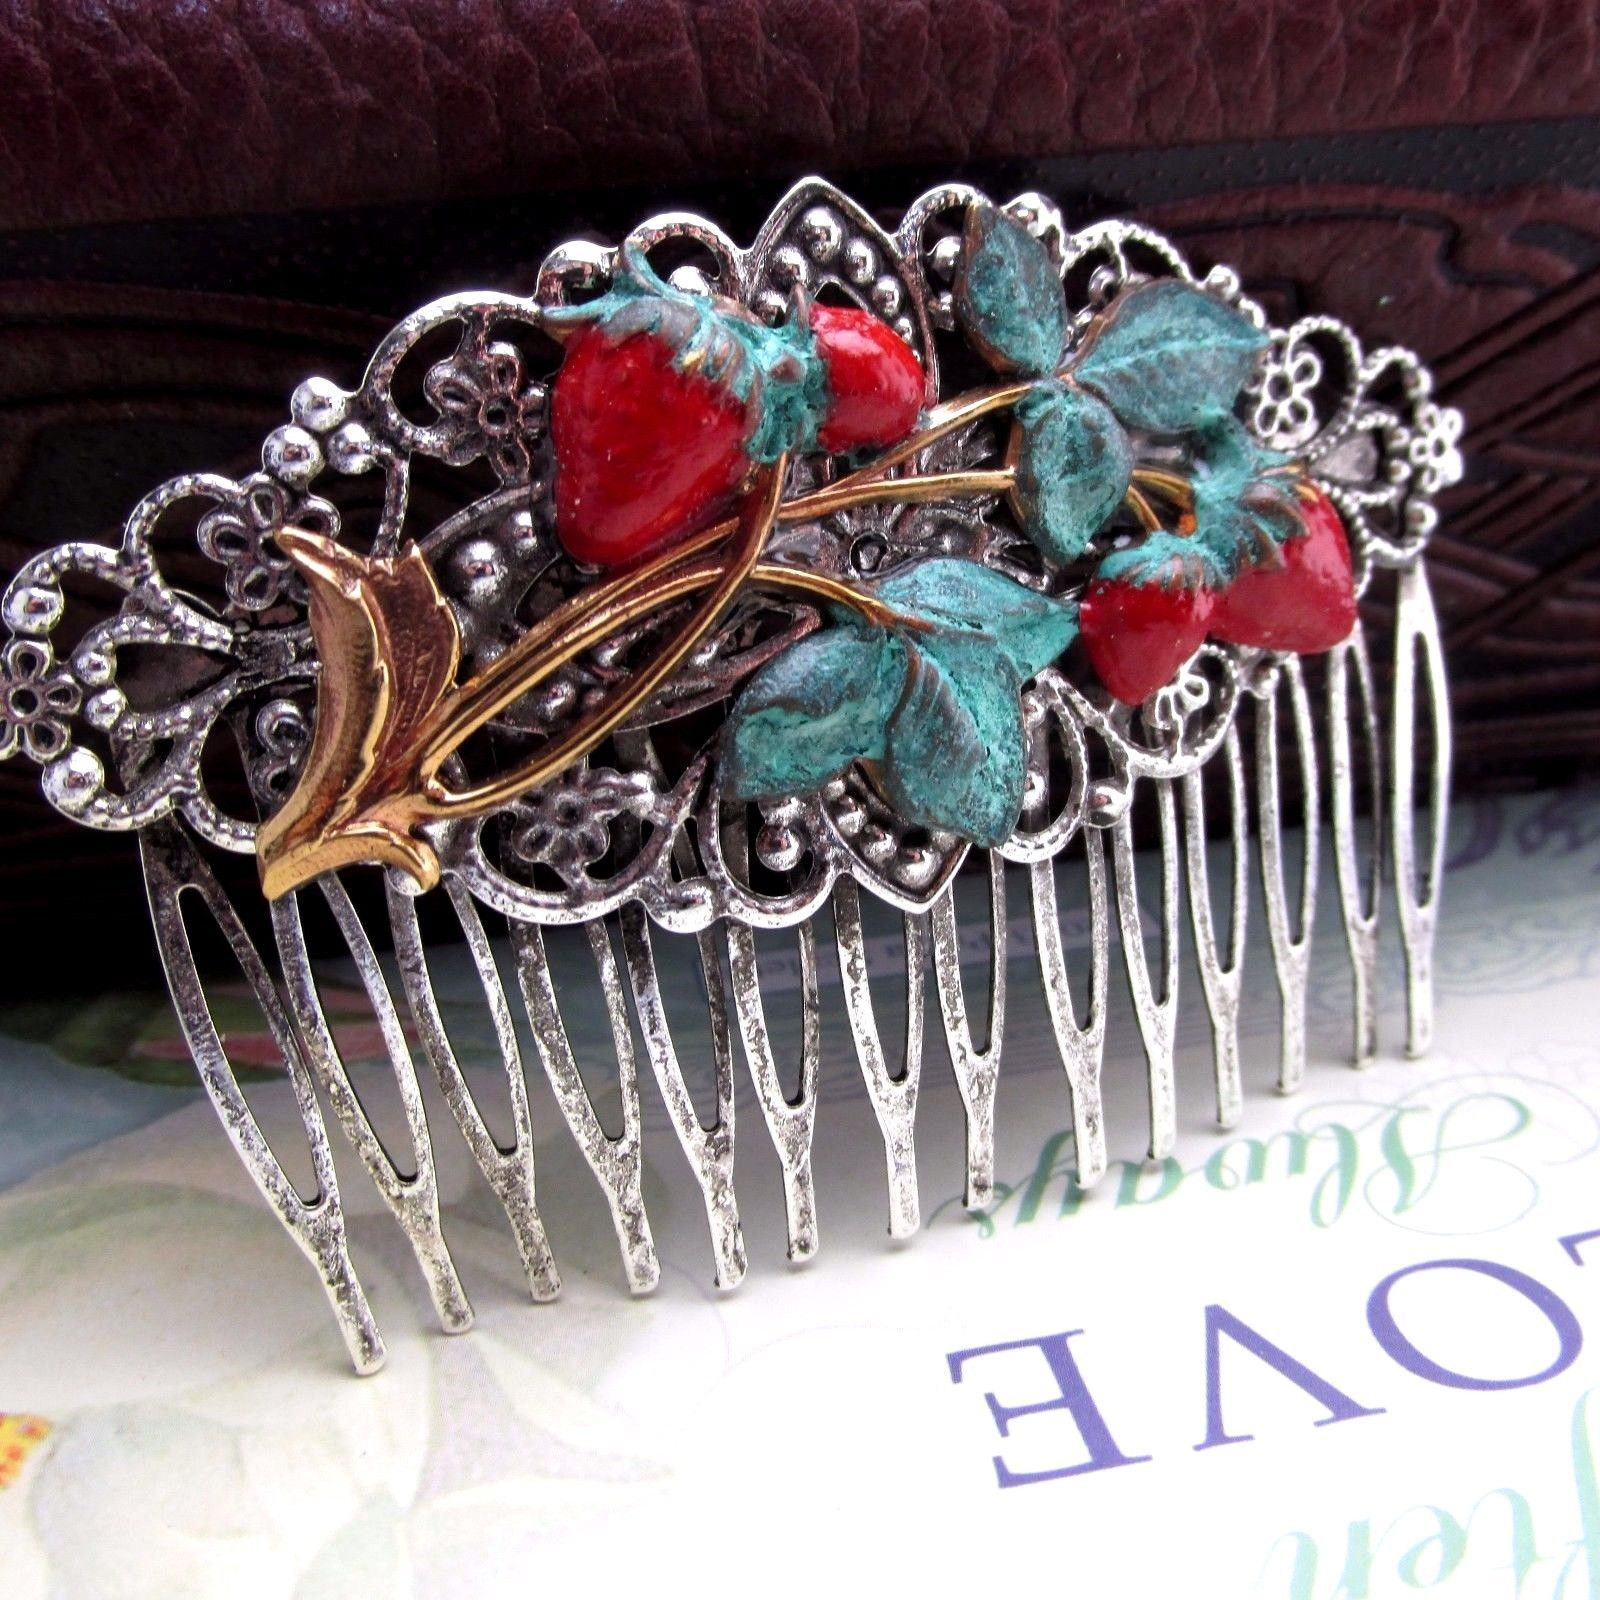 details about strawberry hair comb decorative combs silver over